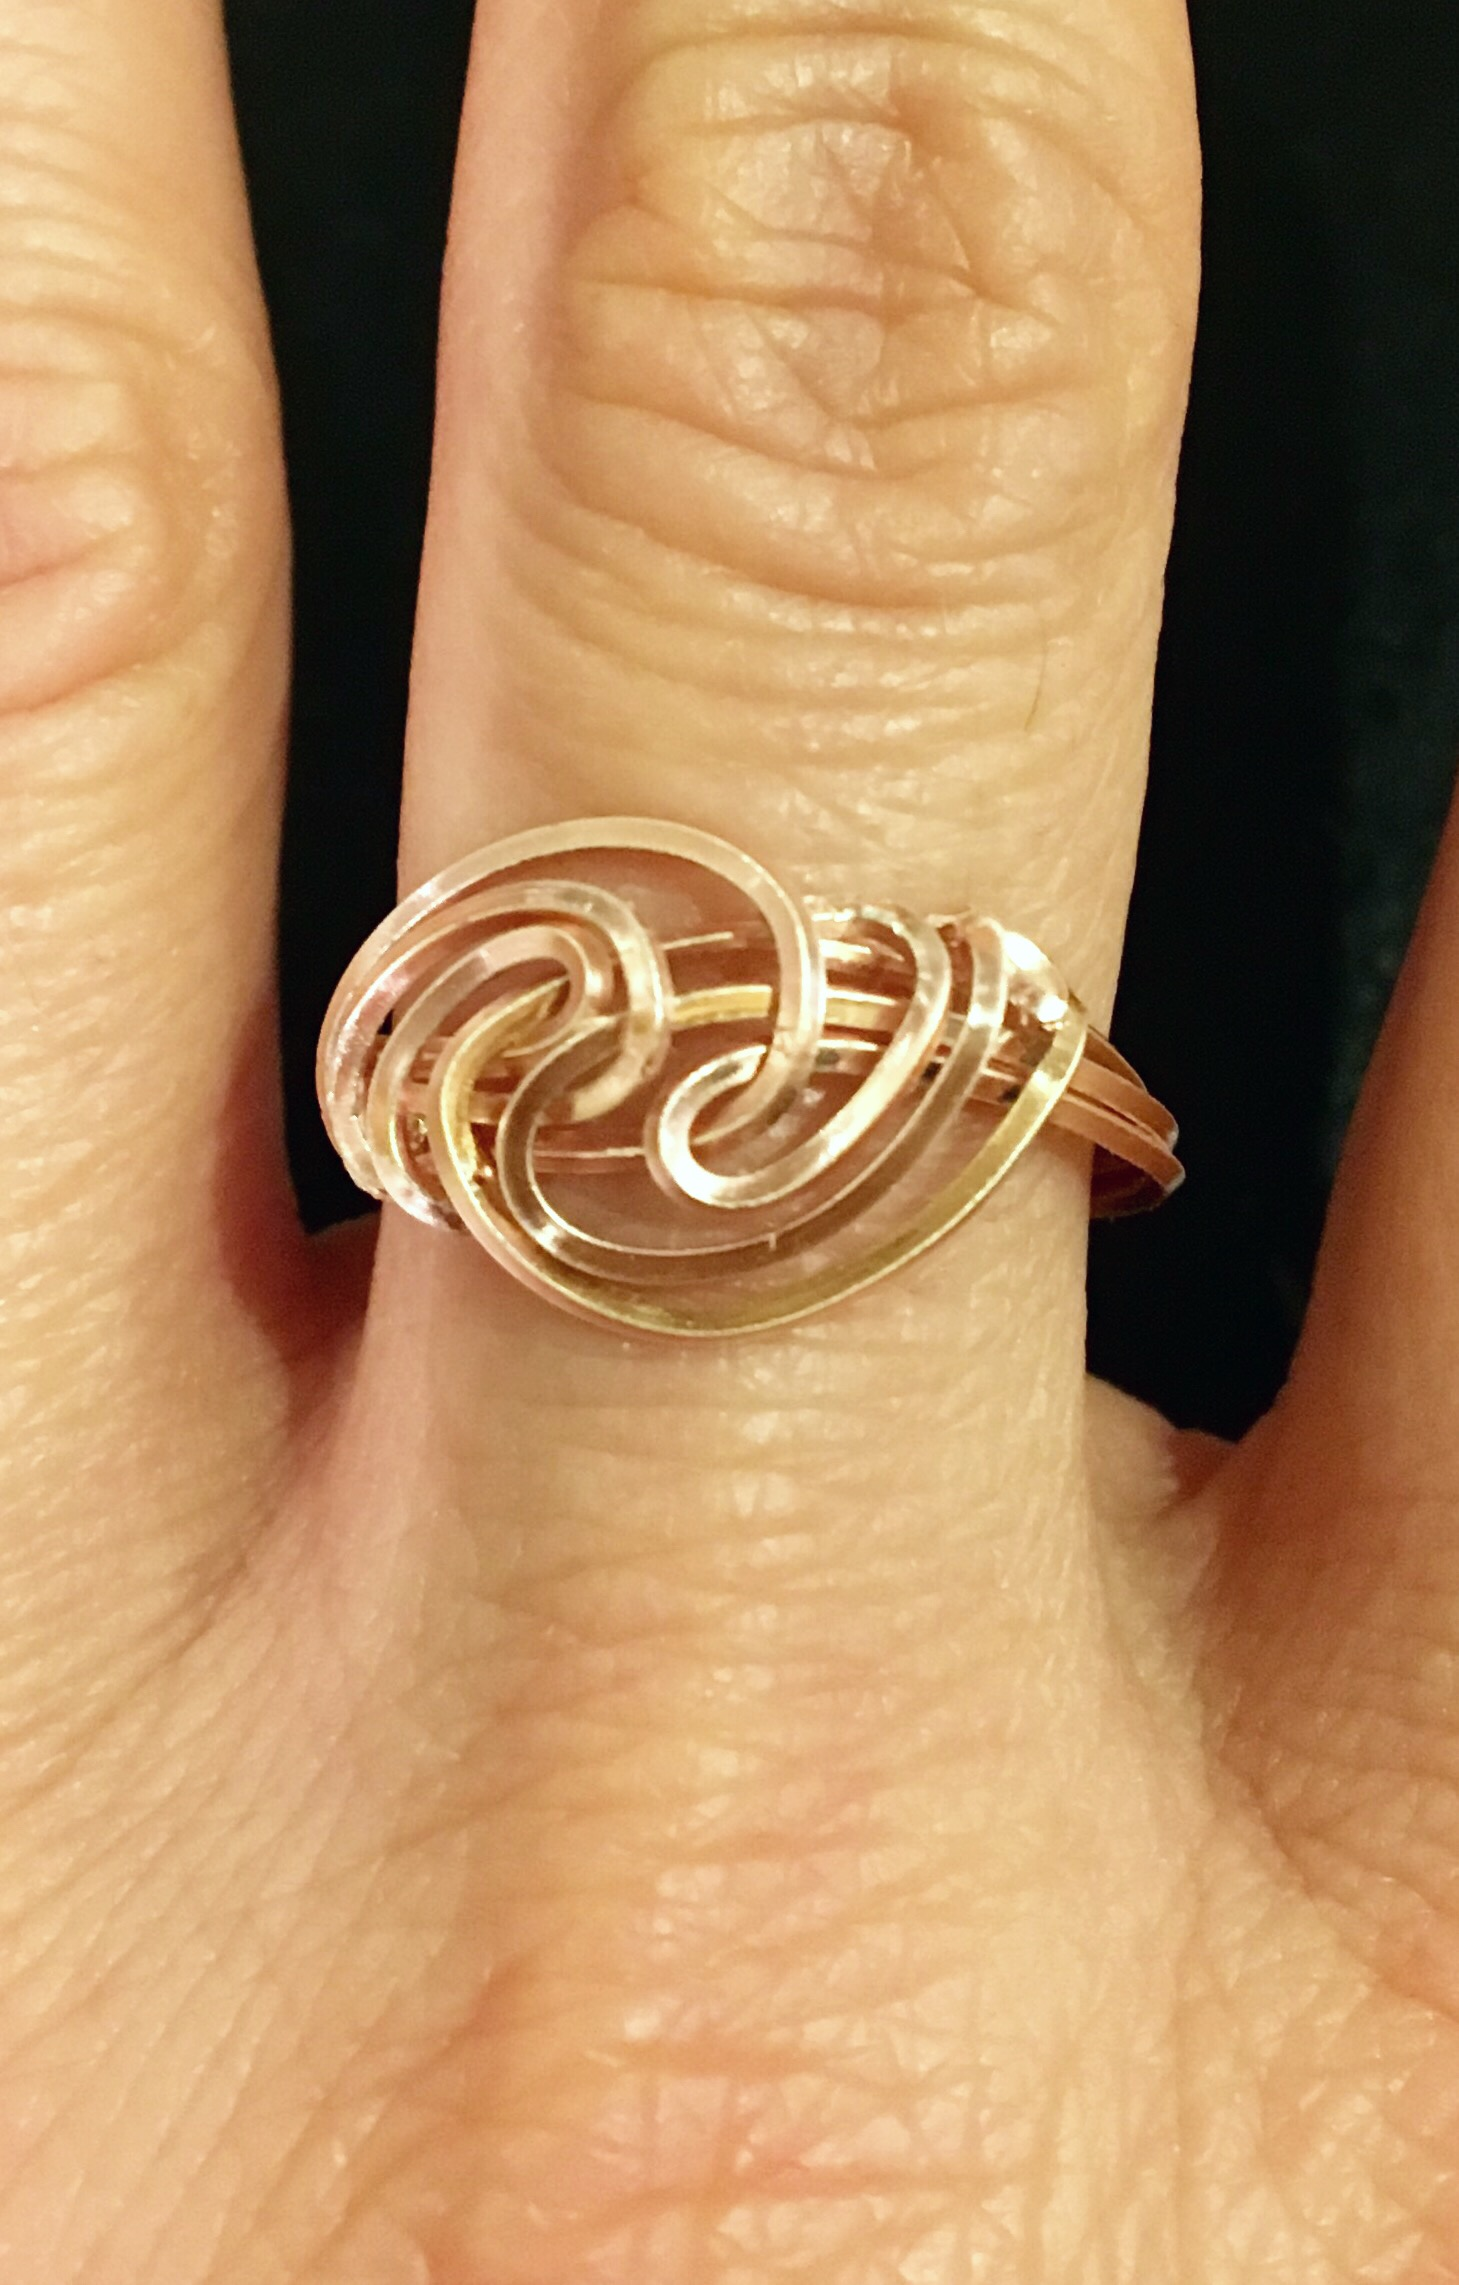 Candid Claire Ring - Silver Plated Rose Gold color